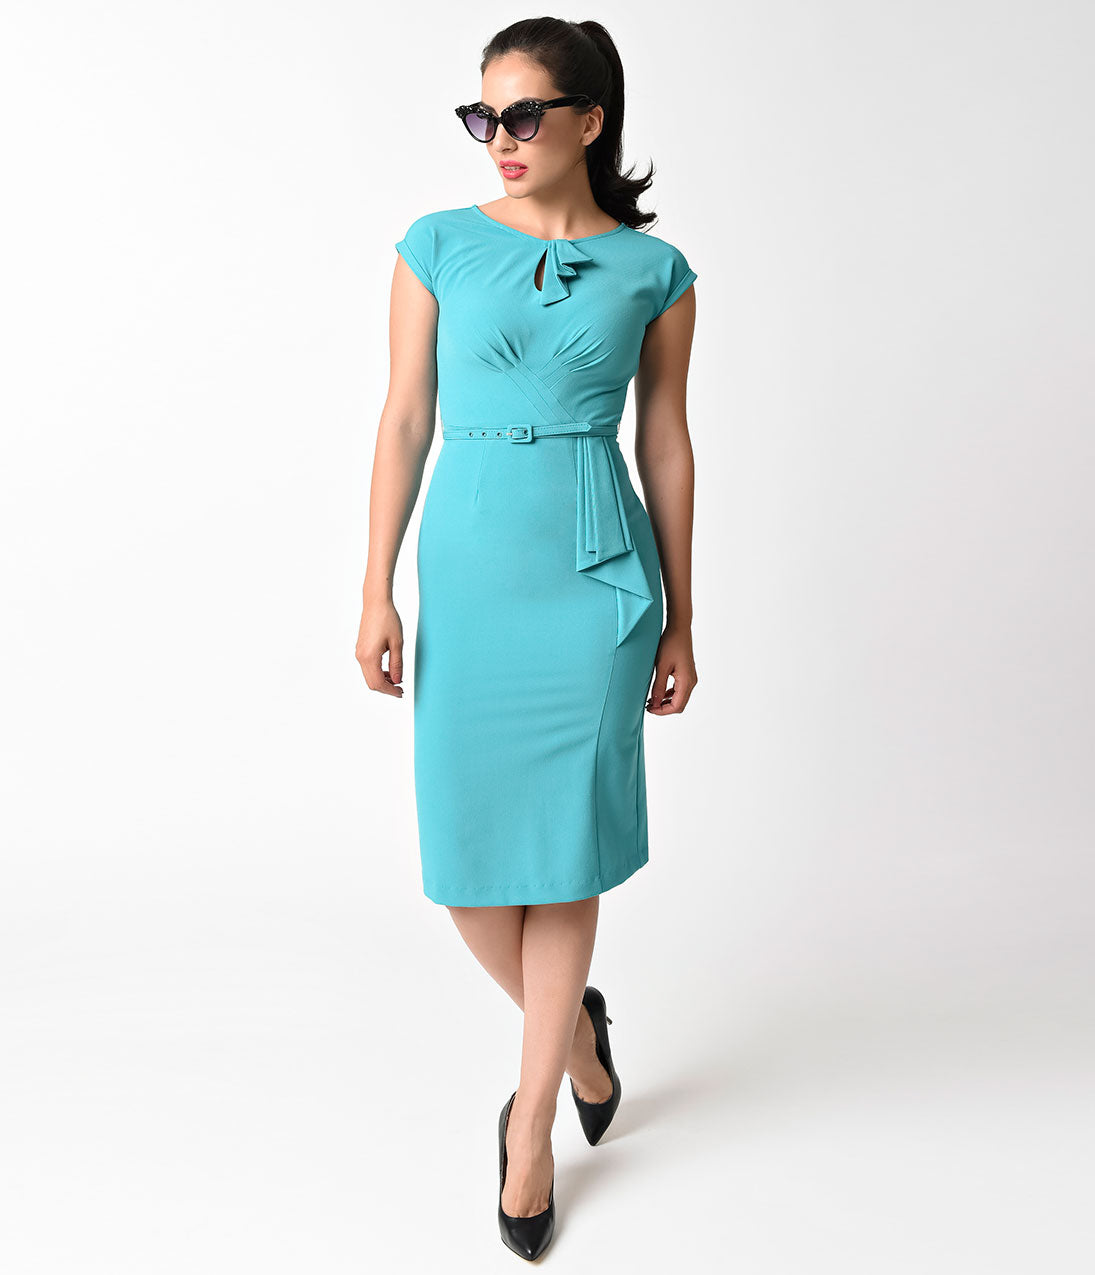 50 Vintage Halloween Costume Ideas Stop Staring 1940s Style Aqua Fitted Timeless Wiggle Dress $80.00 AT vintagedancer.com